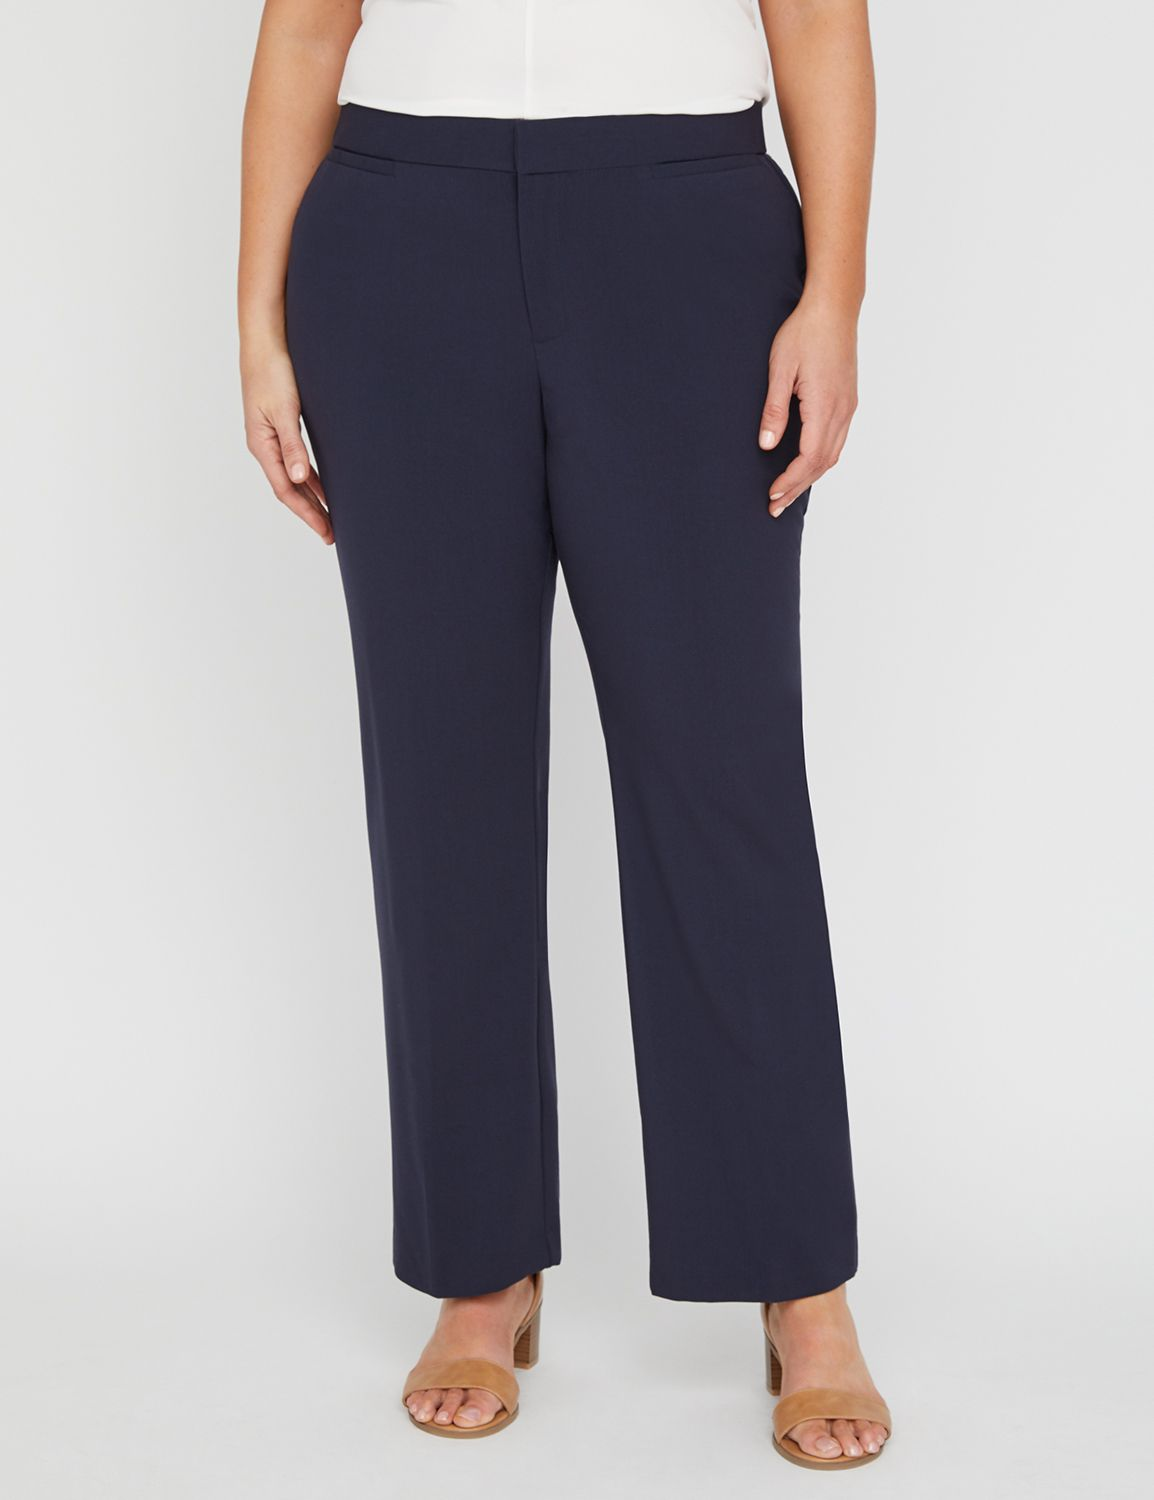 Right Fit Pant (Moderately Curvy) Right Fit Pant (Moderately Curvy) MP-300043669